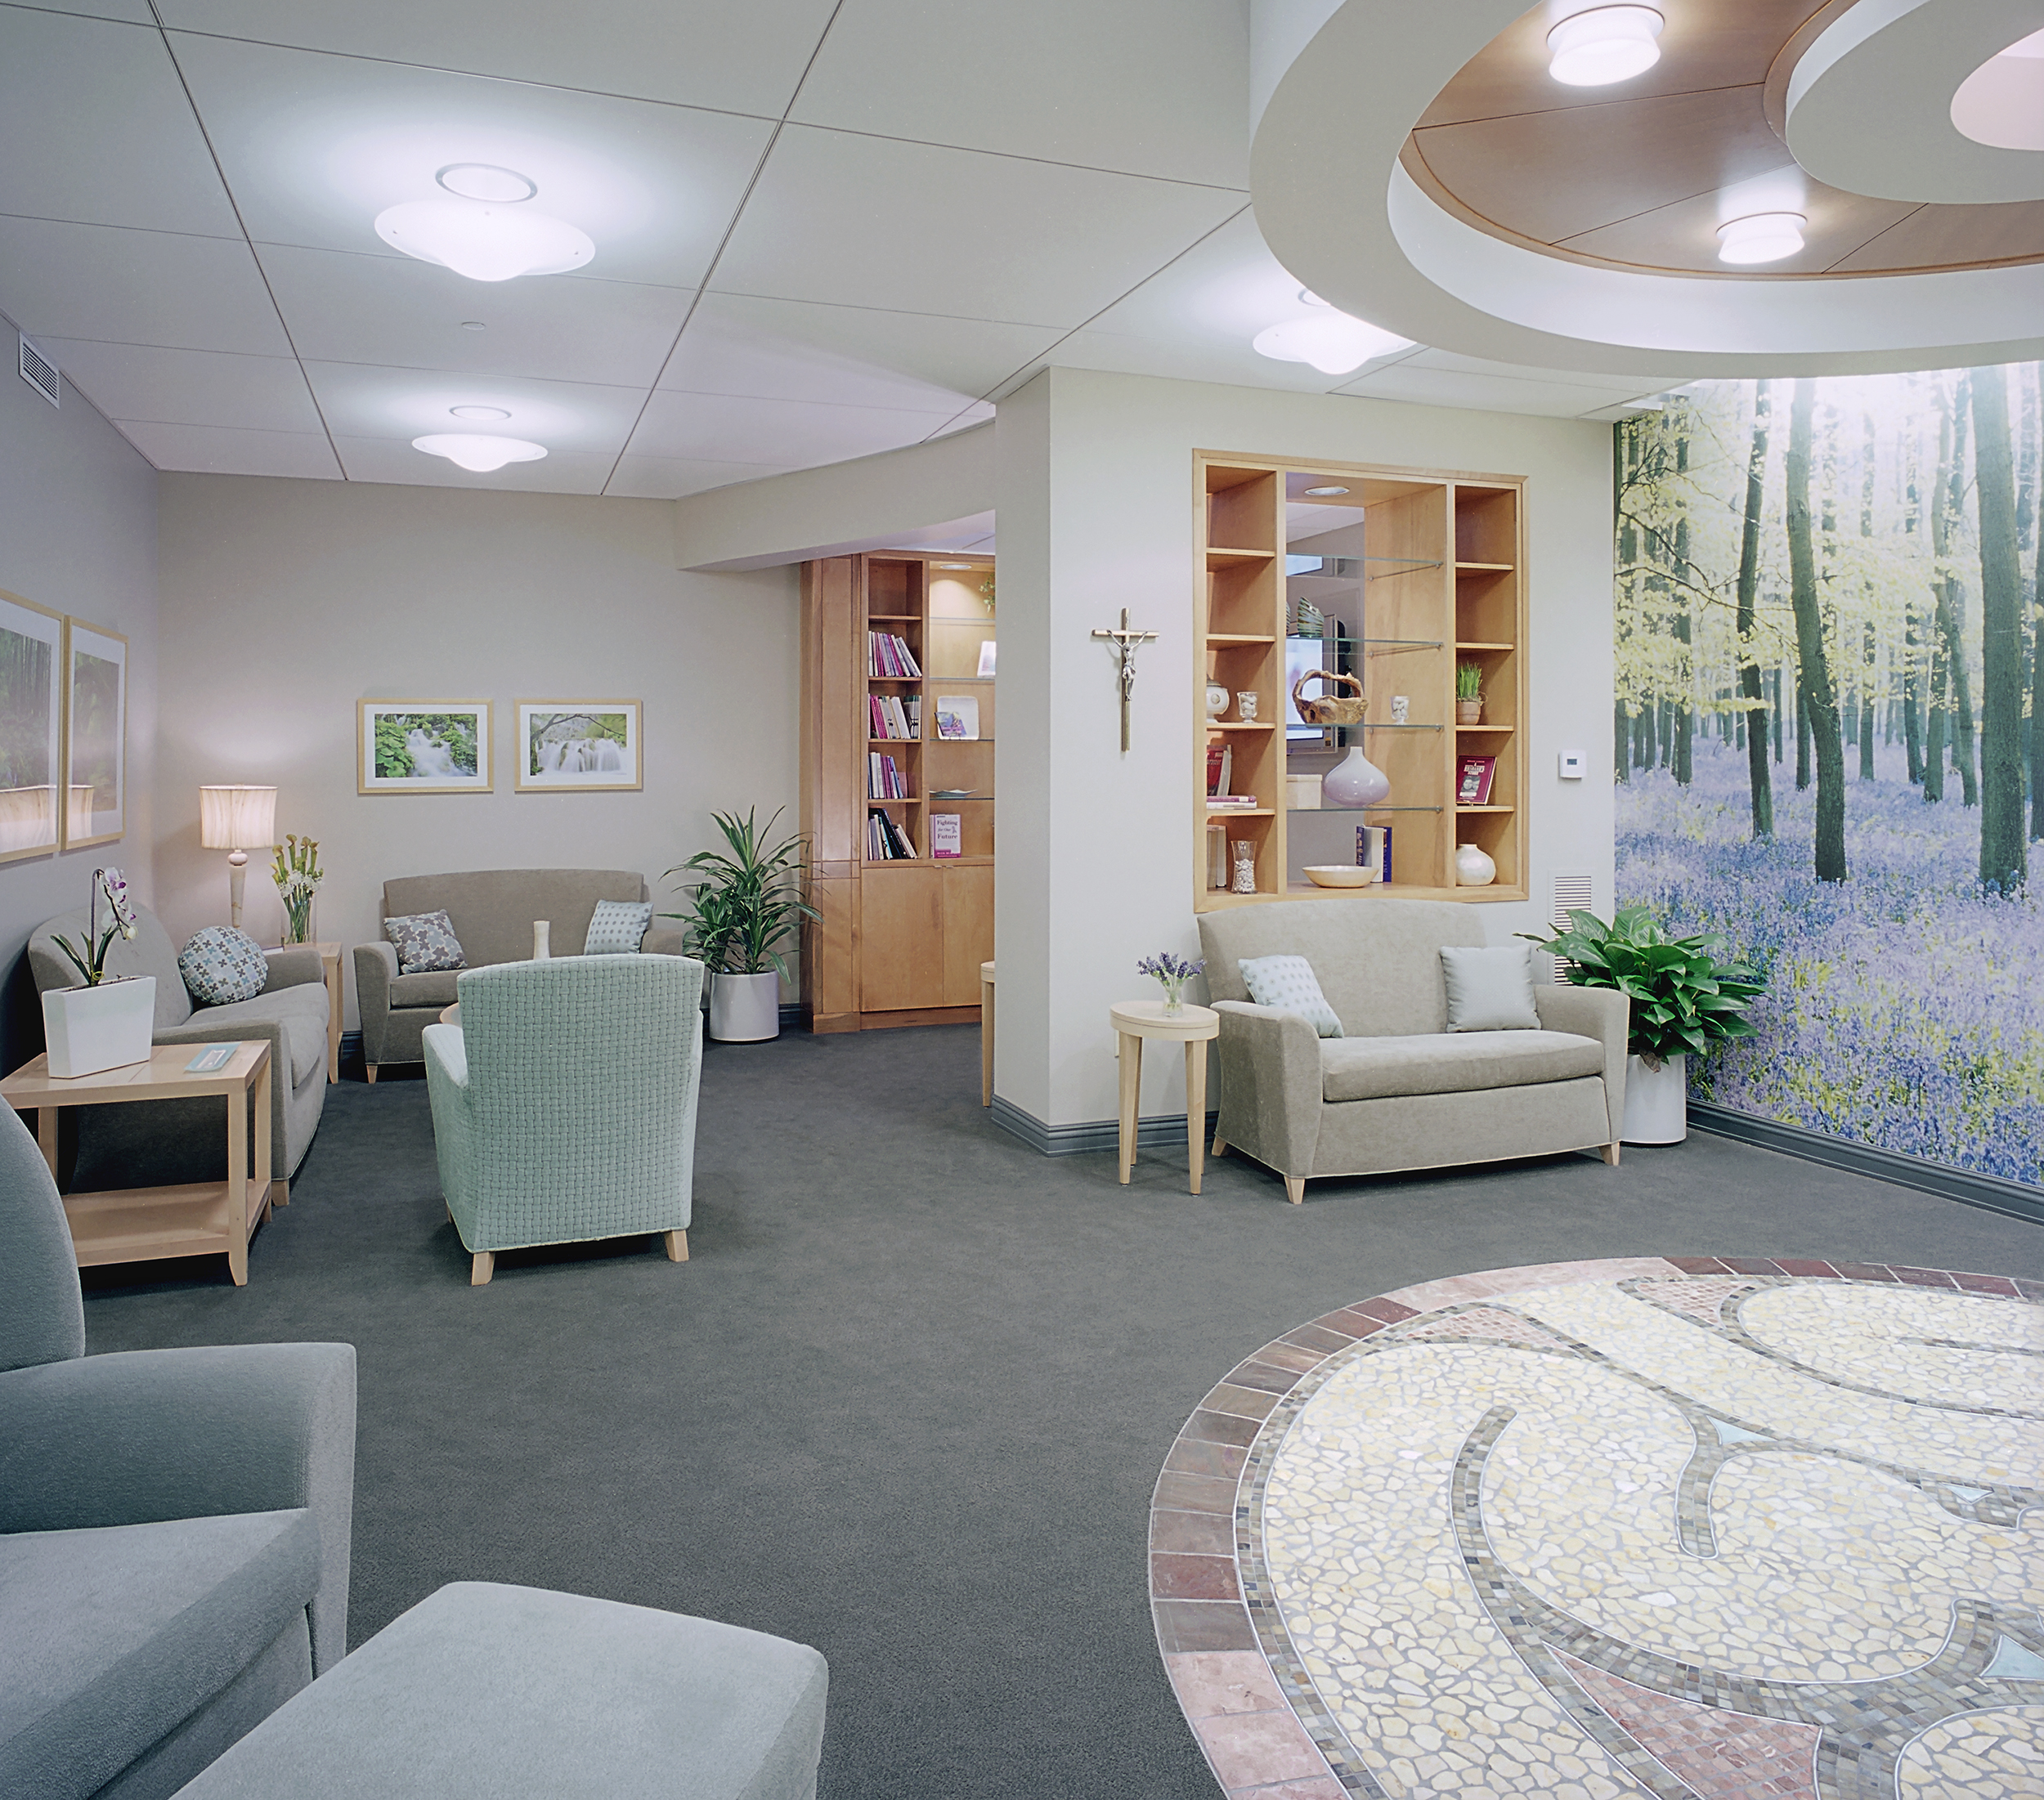 Memorial Hospital -  Mary Ellen Locher Breast Center   The project consisted of a full renovation of the former office area in Memorial Hospital's Physician's Building, Chattanooga, TN. The Breast Center's purpose is to provide services and accommodate patients at all stages of cancer treatment. The client desired the space to project an atmosphere that was calming, light, and feminine. Serpentine shapes, pale colors, and natural features provide a welcoming and soothing environment for patients and staff. The project included a full Infusion Center, mammography rooms, ultrasound rooms, MRI, and other various procedure rooms, multiple patient waiting areas, and a small boutique for cancer friendly accessories.